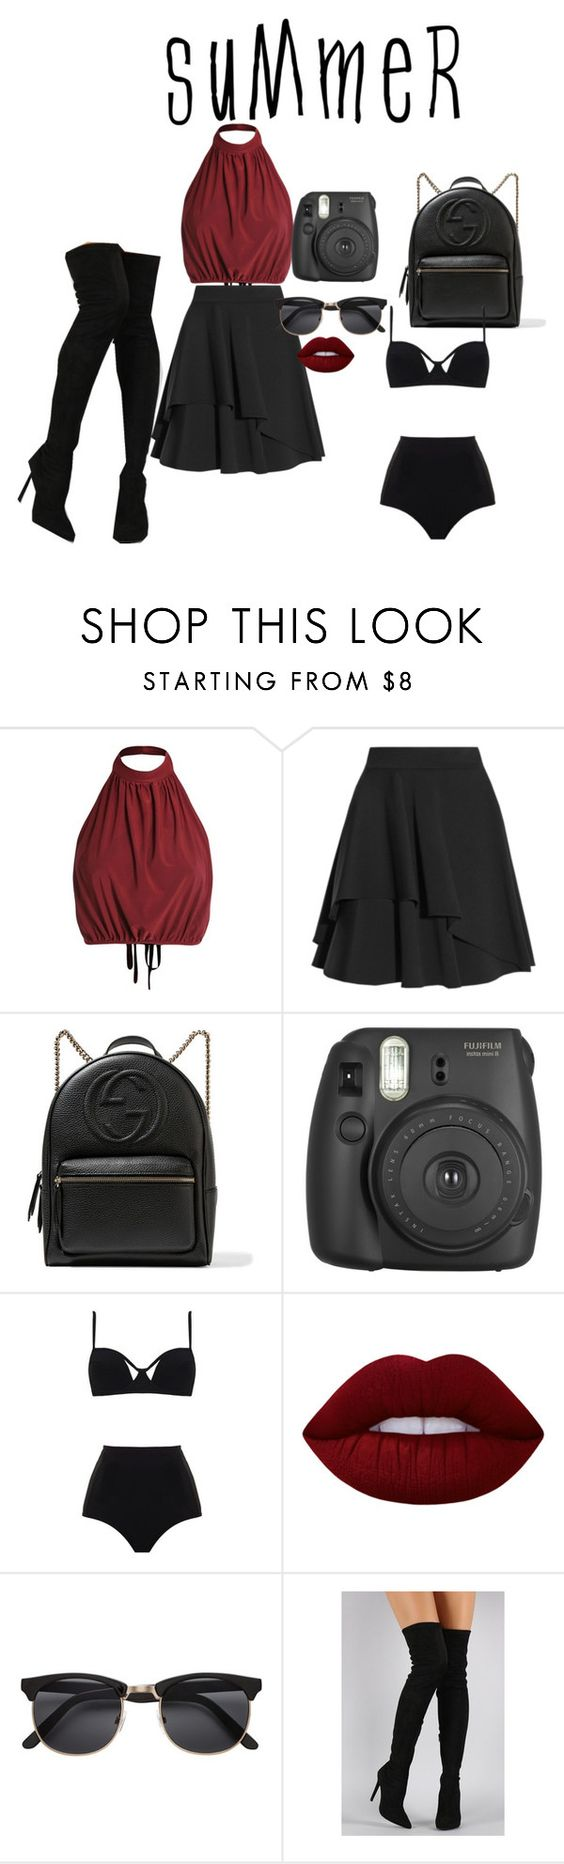 """""""Summer Roadtrip"""" by girllively ❤ liked on Polyvore featuring Alexander McQueen, Gucci, MOEVA, Lime Crime, Liliana and roadtrip"""